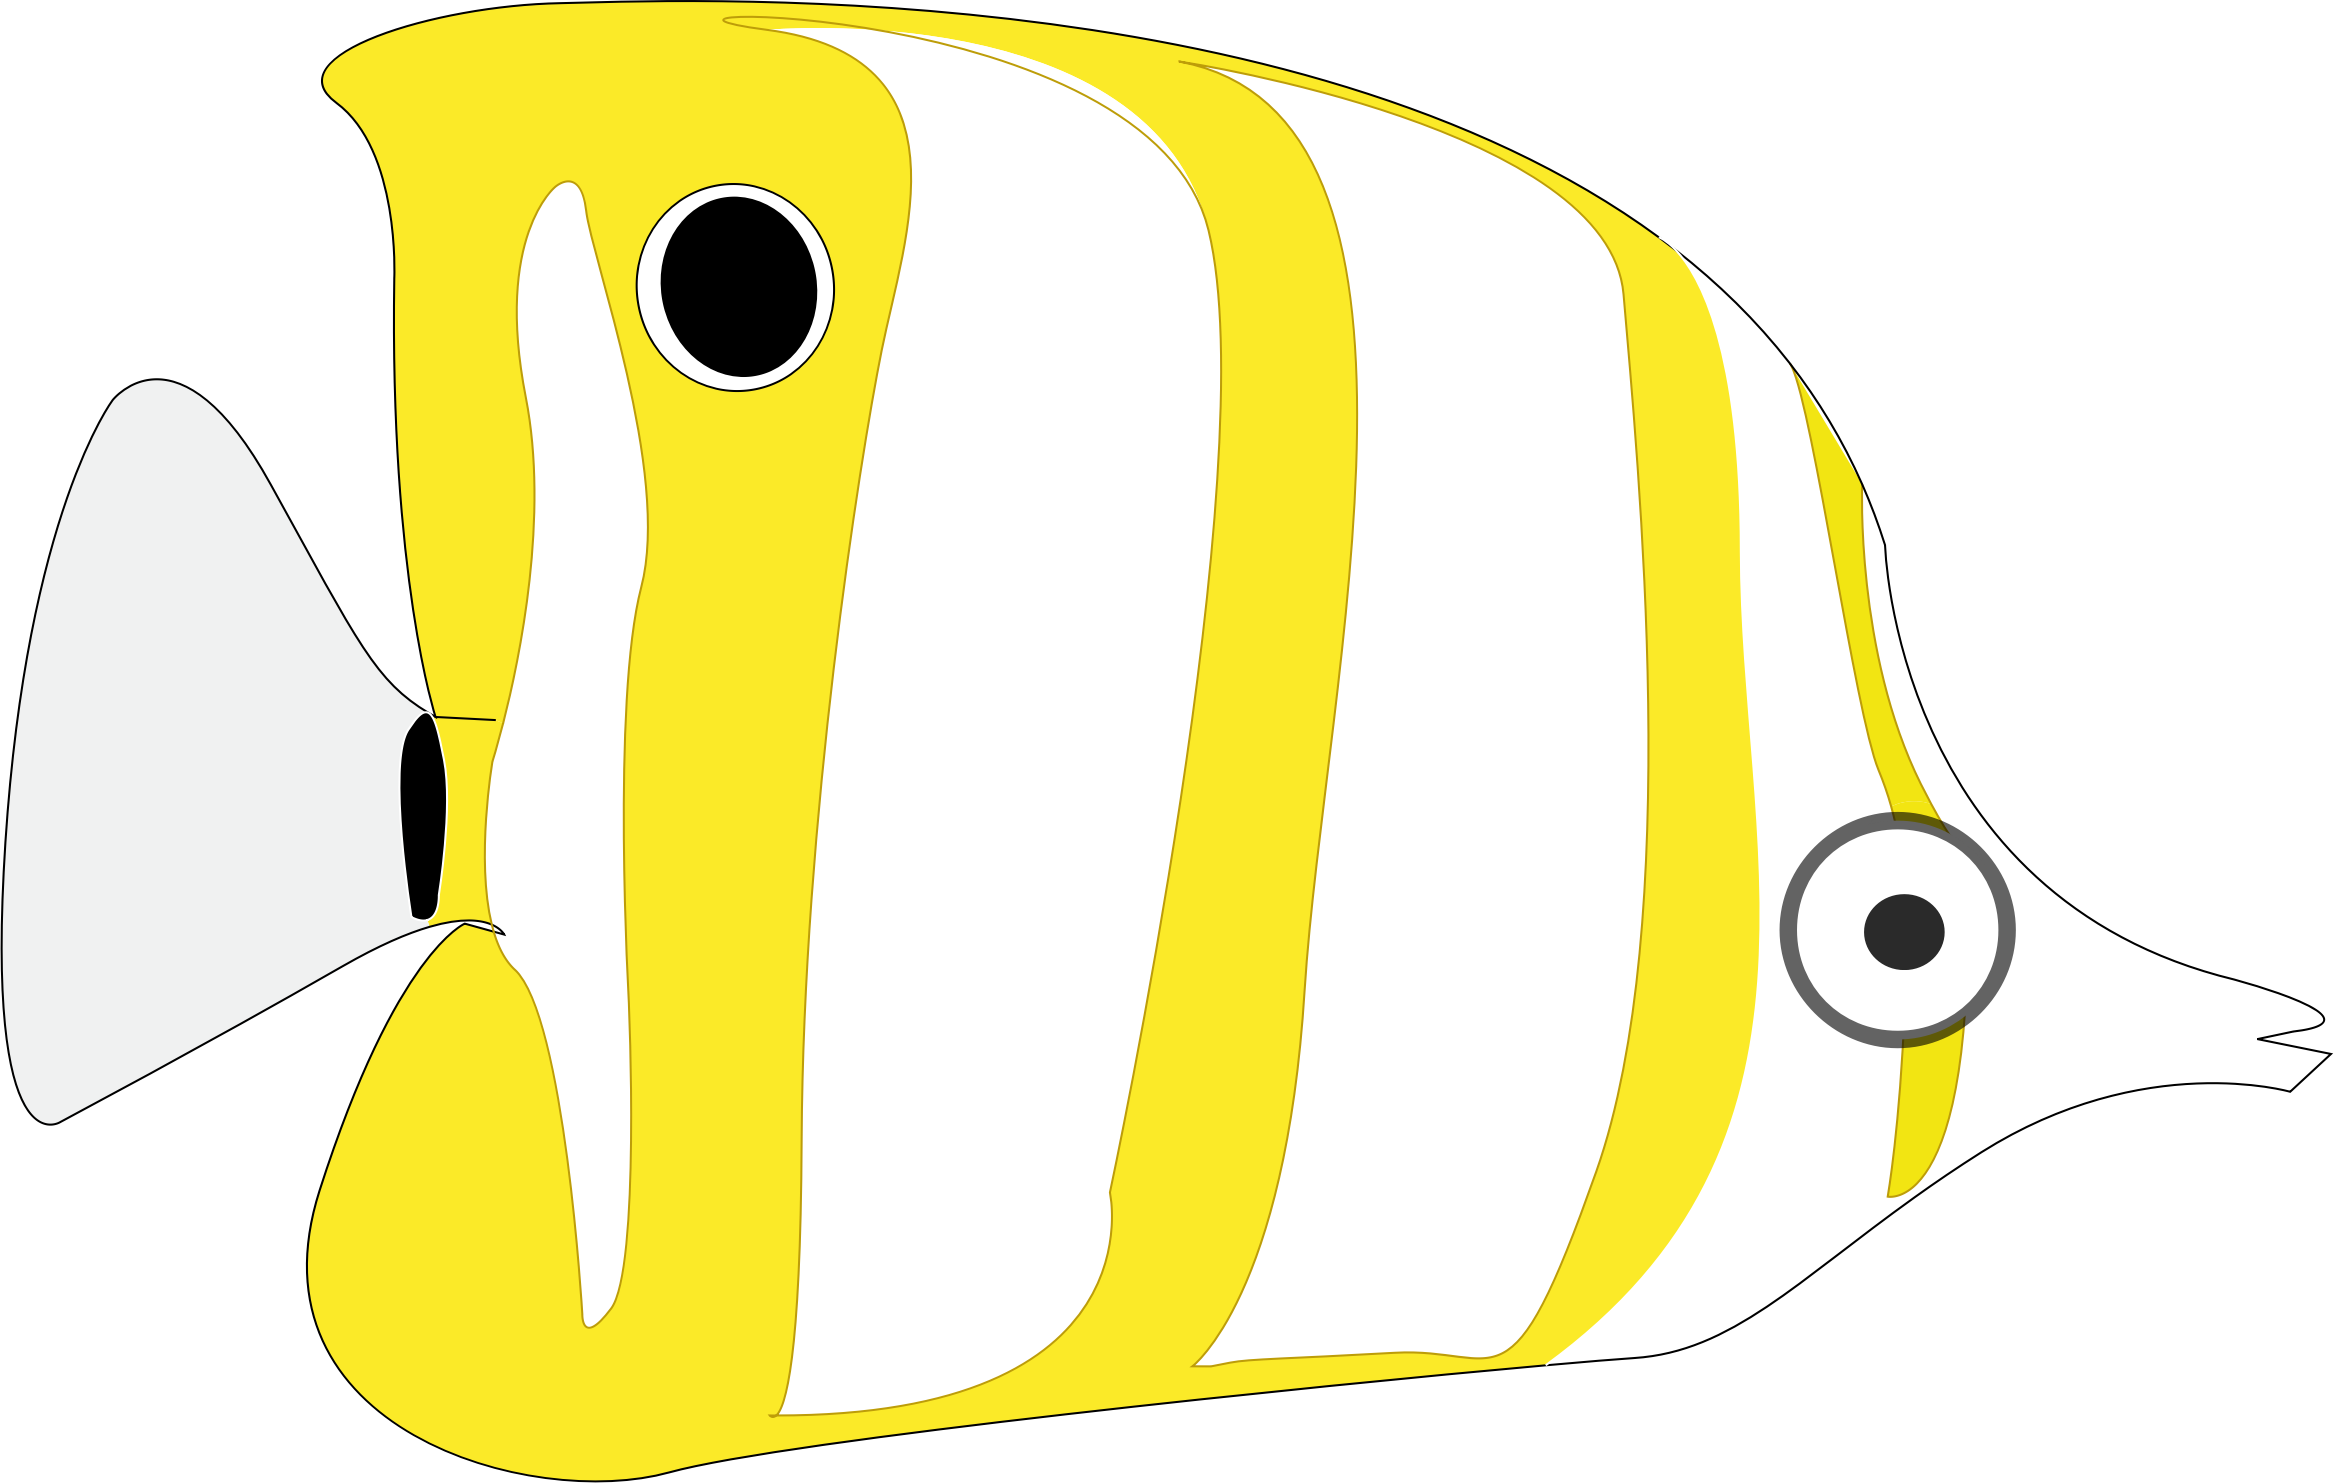 5874 as well Dr Seuss Clipart 19722 in addition 8780 as well 1174453 also Pictures Of Food Groups. on cartoon fish